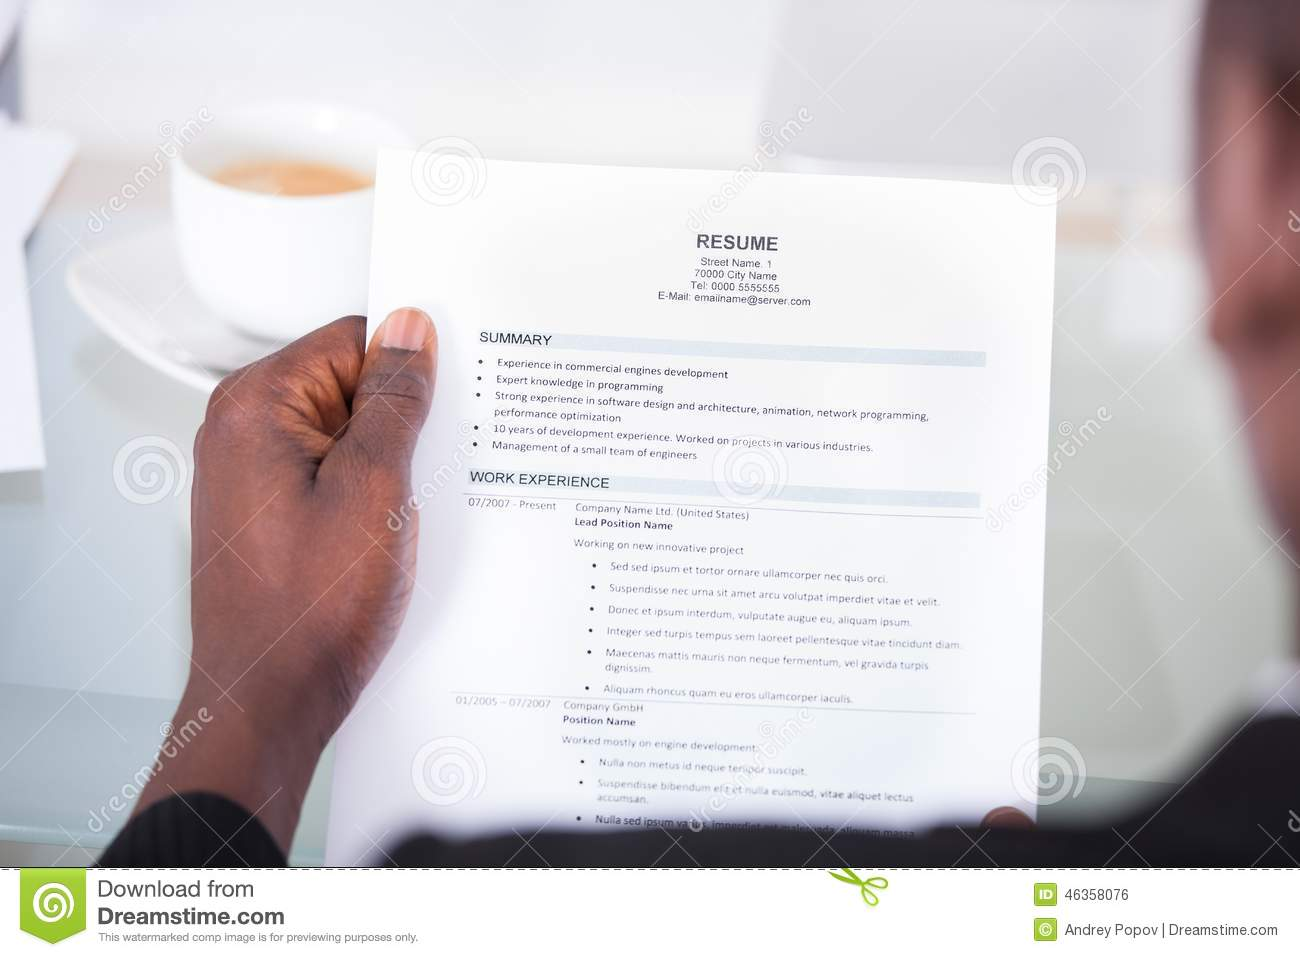 how to ask to hand in a resume